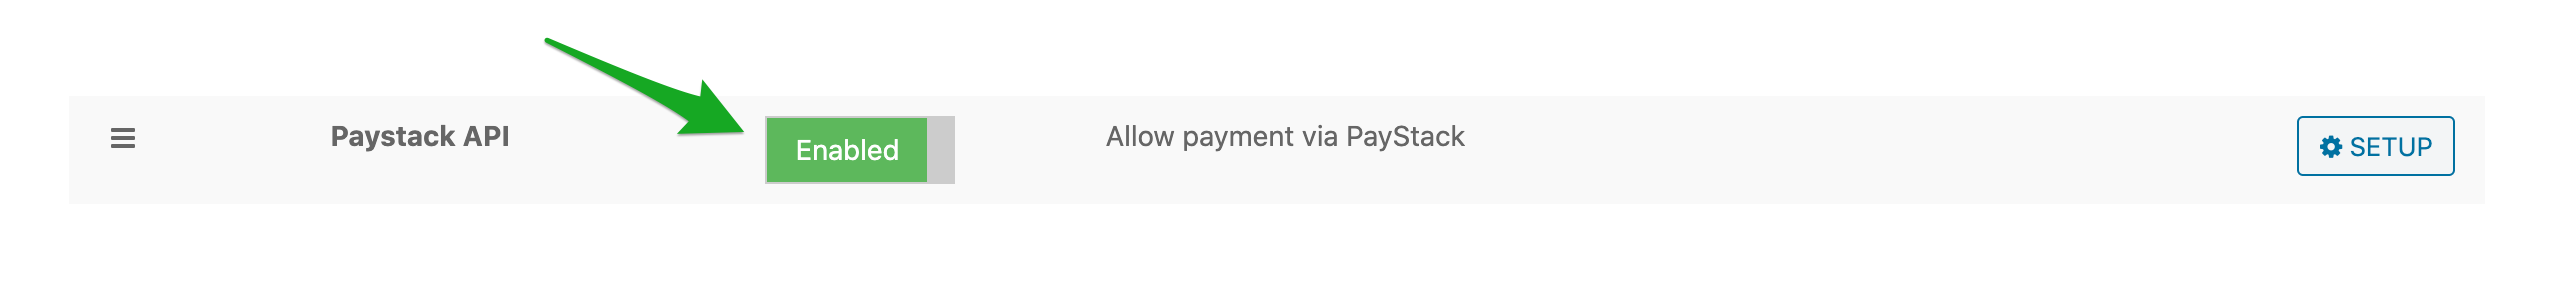 Set up Paystack Payment in WPFreelance Theme - Enable Paystack